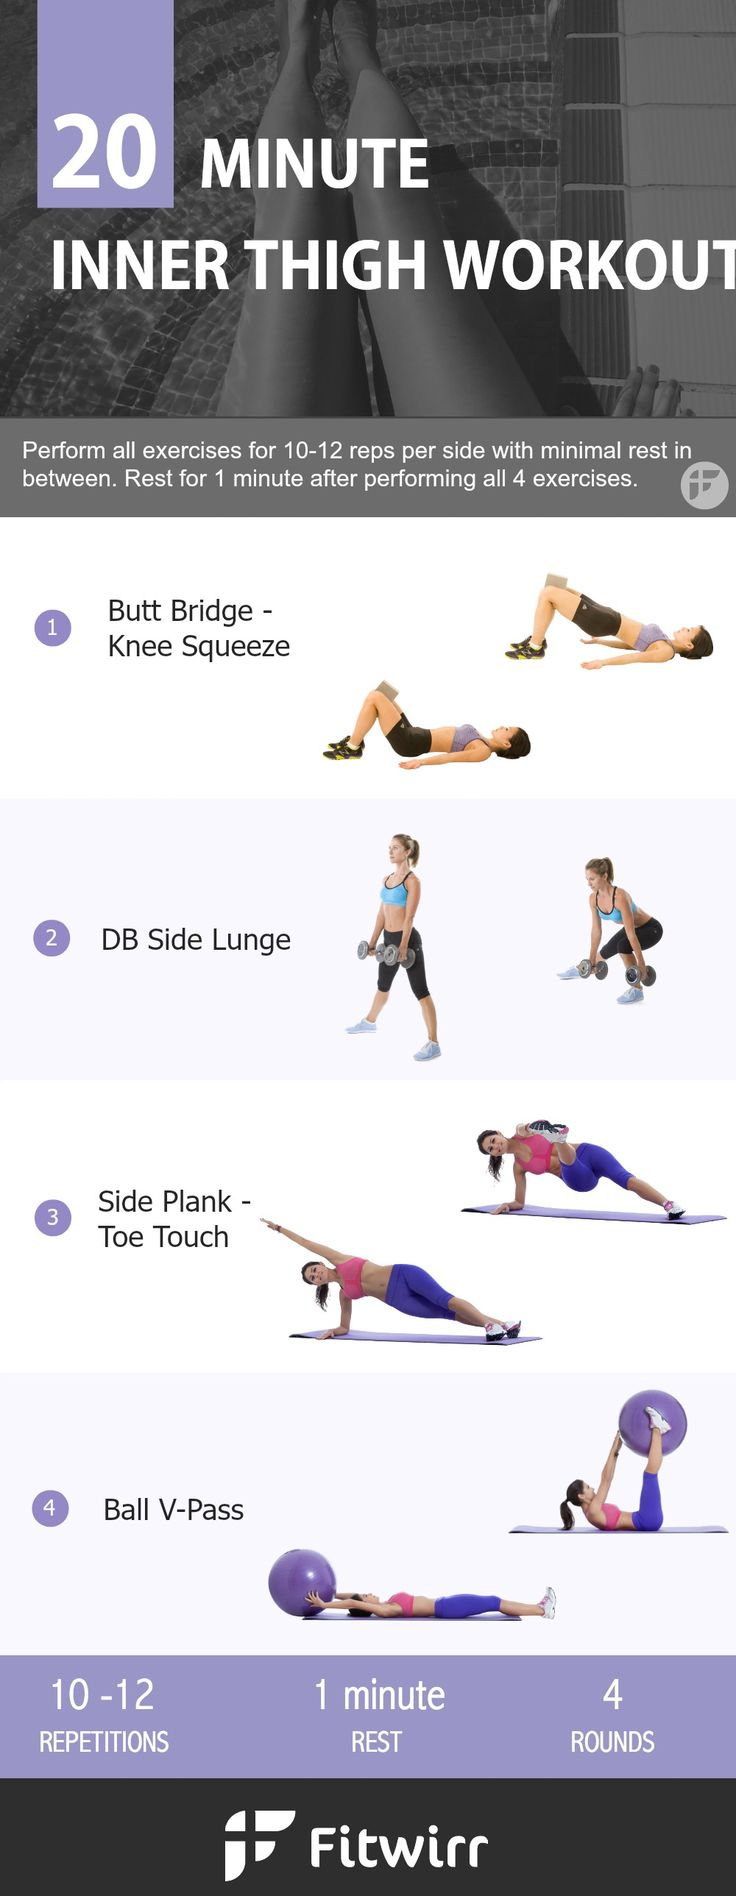 20-minute workouts to burn and lose inner thigh fat. These exercises will not only work your inner thighs, but also your other trouble spots like your outer thighs, butt, and the back of your legs that collect cellulite. Perform this 20 minute inner thigh fat workout 2-3 days a week to make the thigh fat disappear. #innerthigh #thighfat #bikinibodyworkout